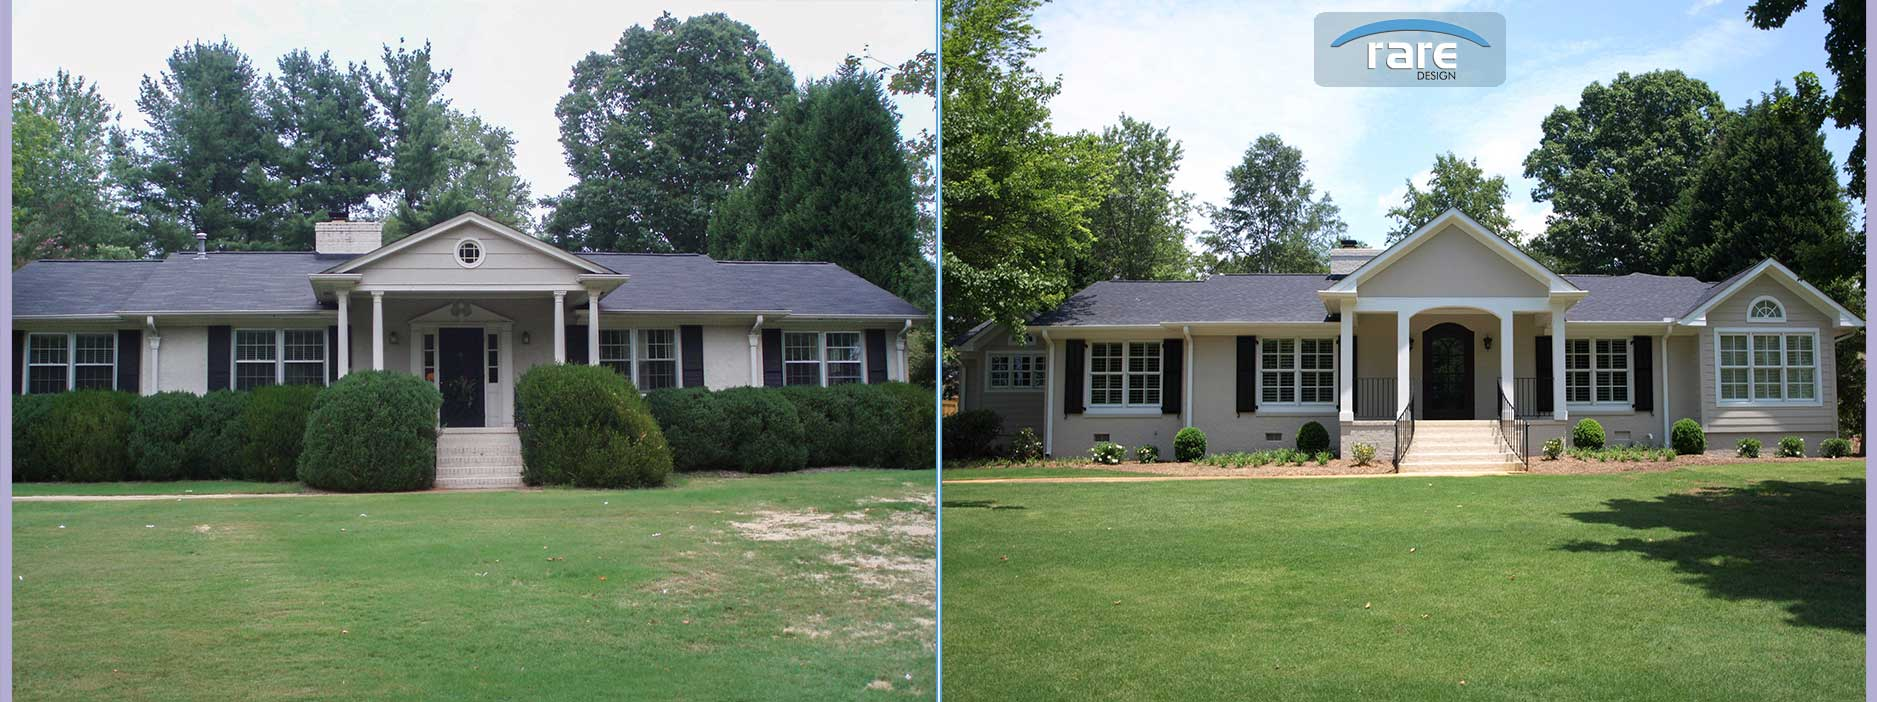 Greenville home remodeling raredesign inc for Exterior remodeling